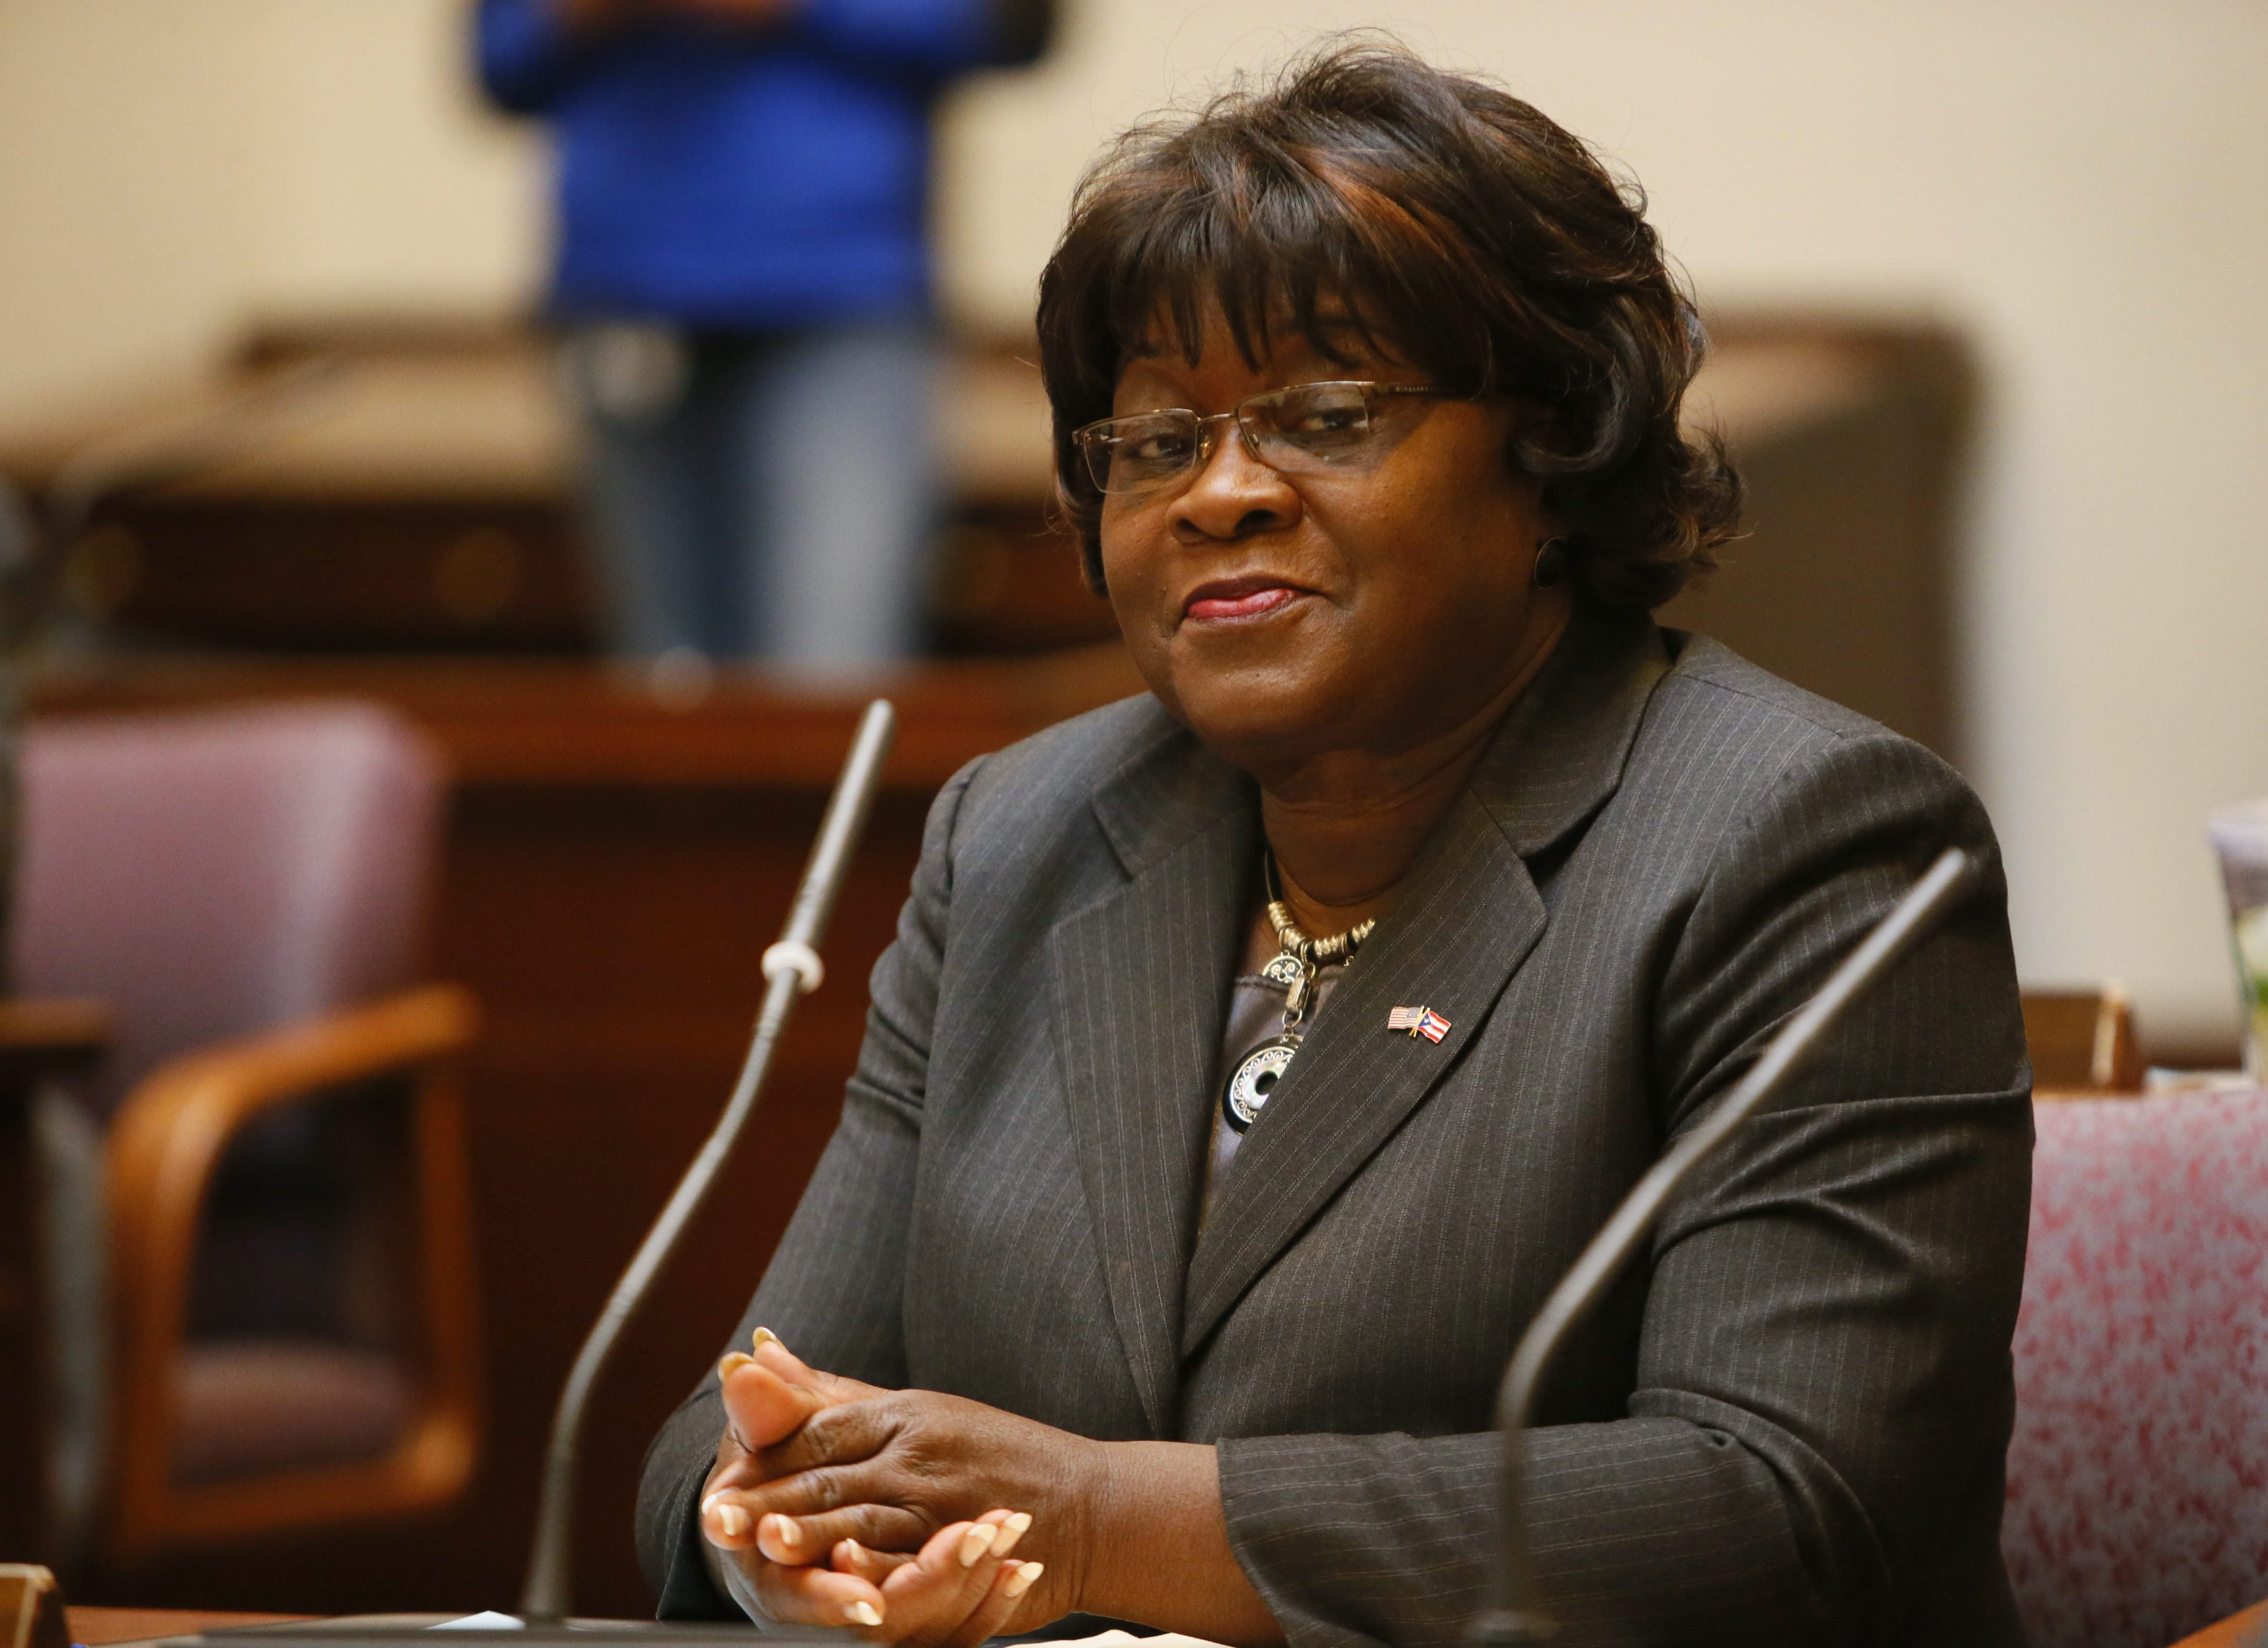 Erie County Legislator Betty Jean Grant has served in multiple elected positions, both at the city and county level. (Derek Gee/Buffalo News)